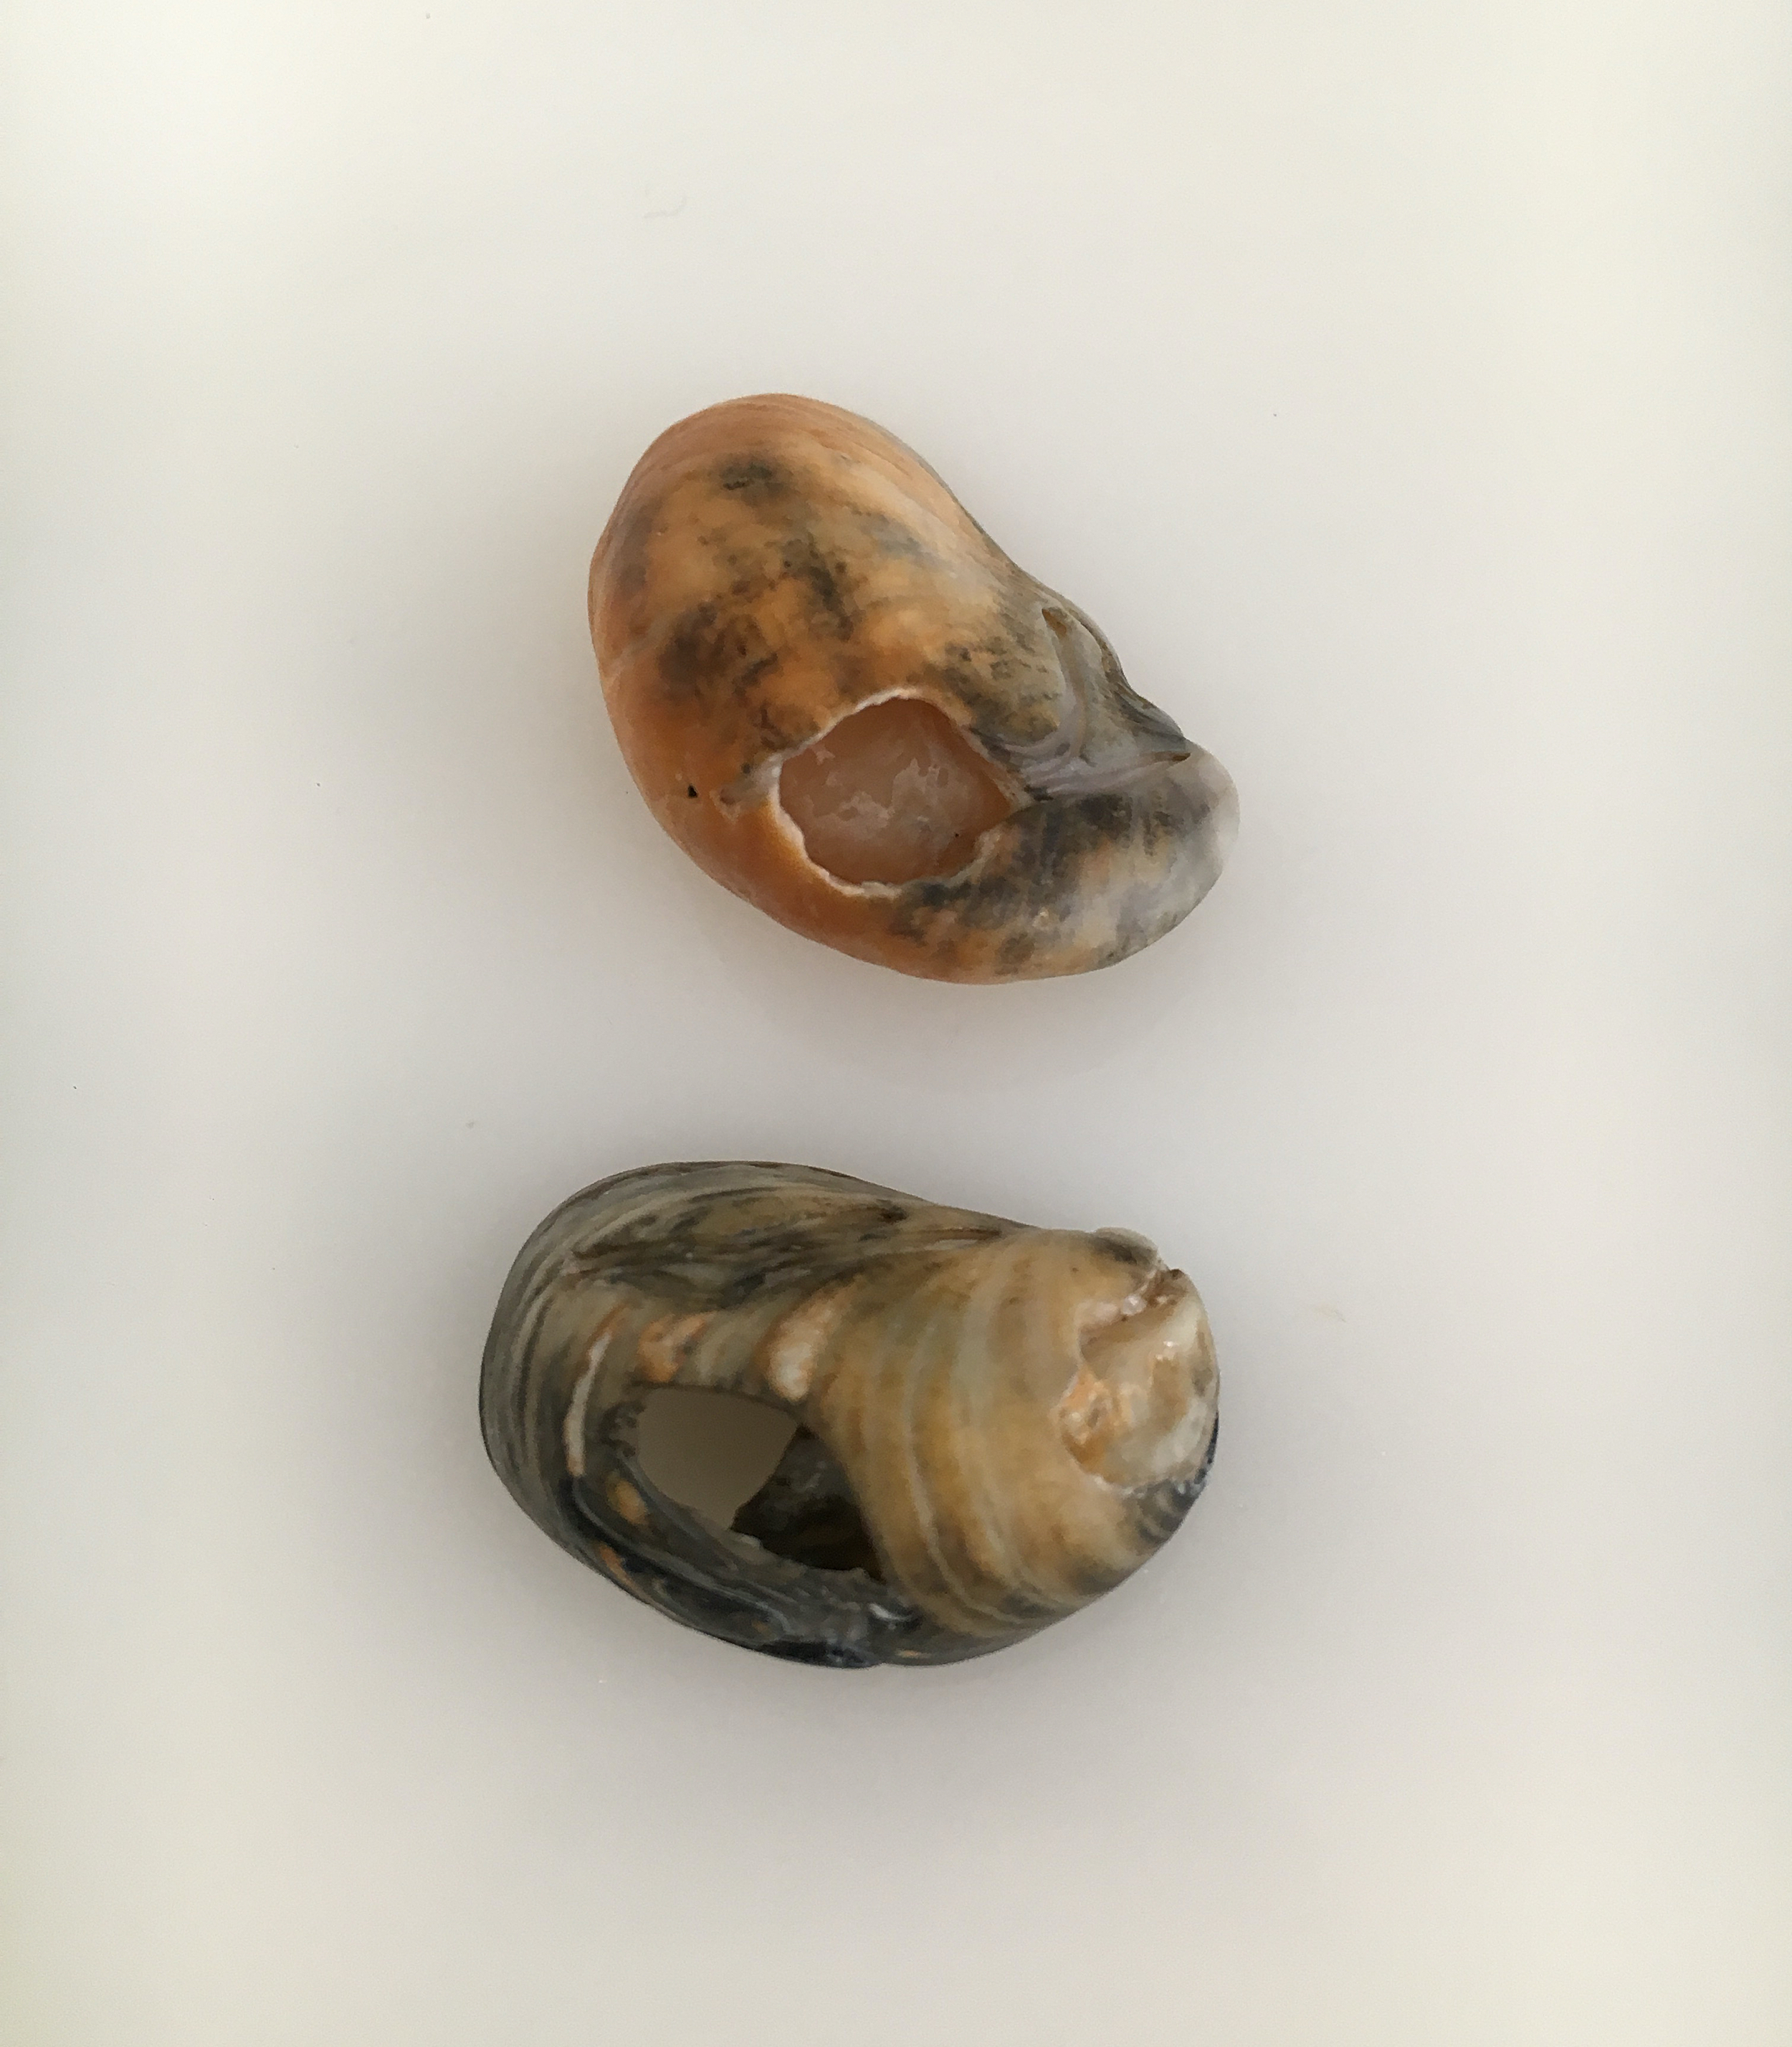 old slipper shells turning color from sediment